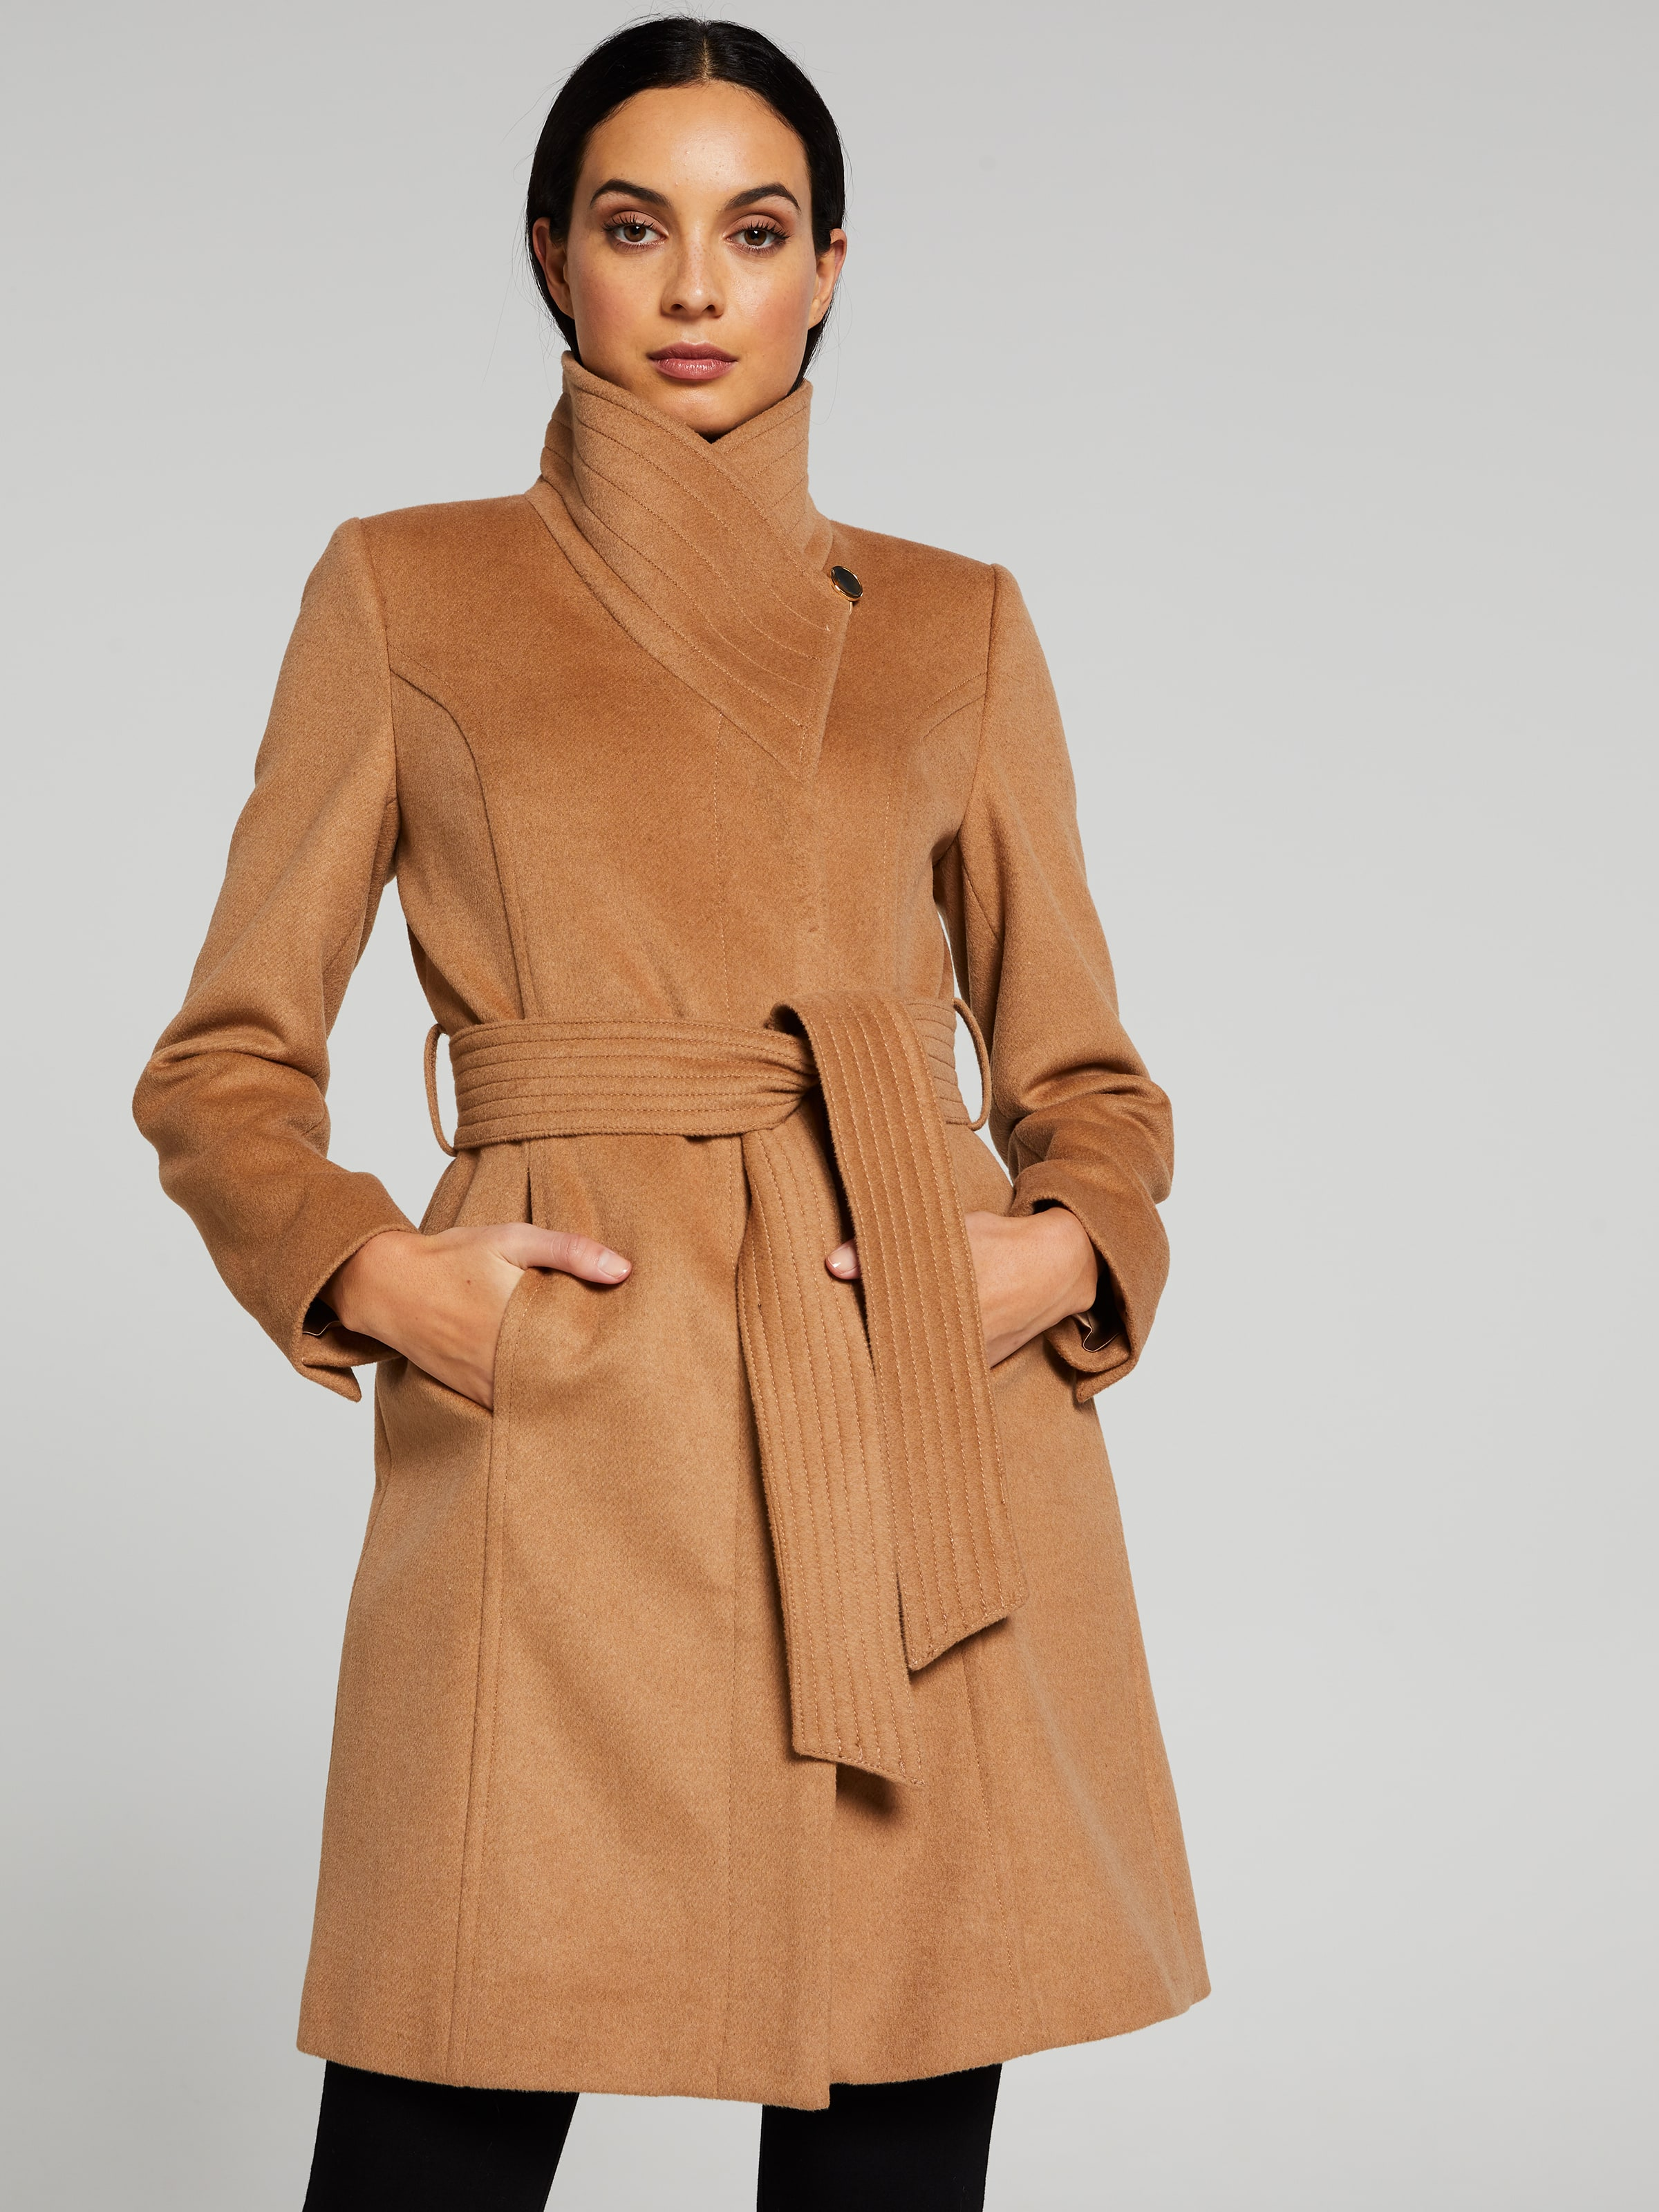 The Iceland Funnel Neck Coat